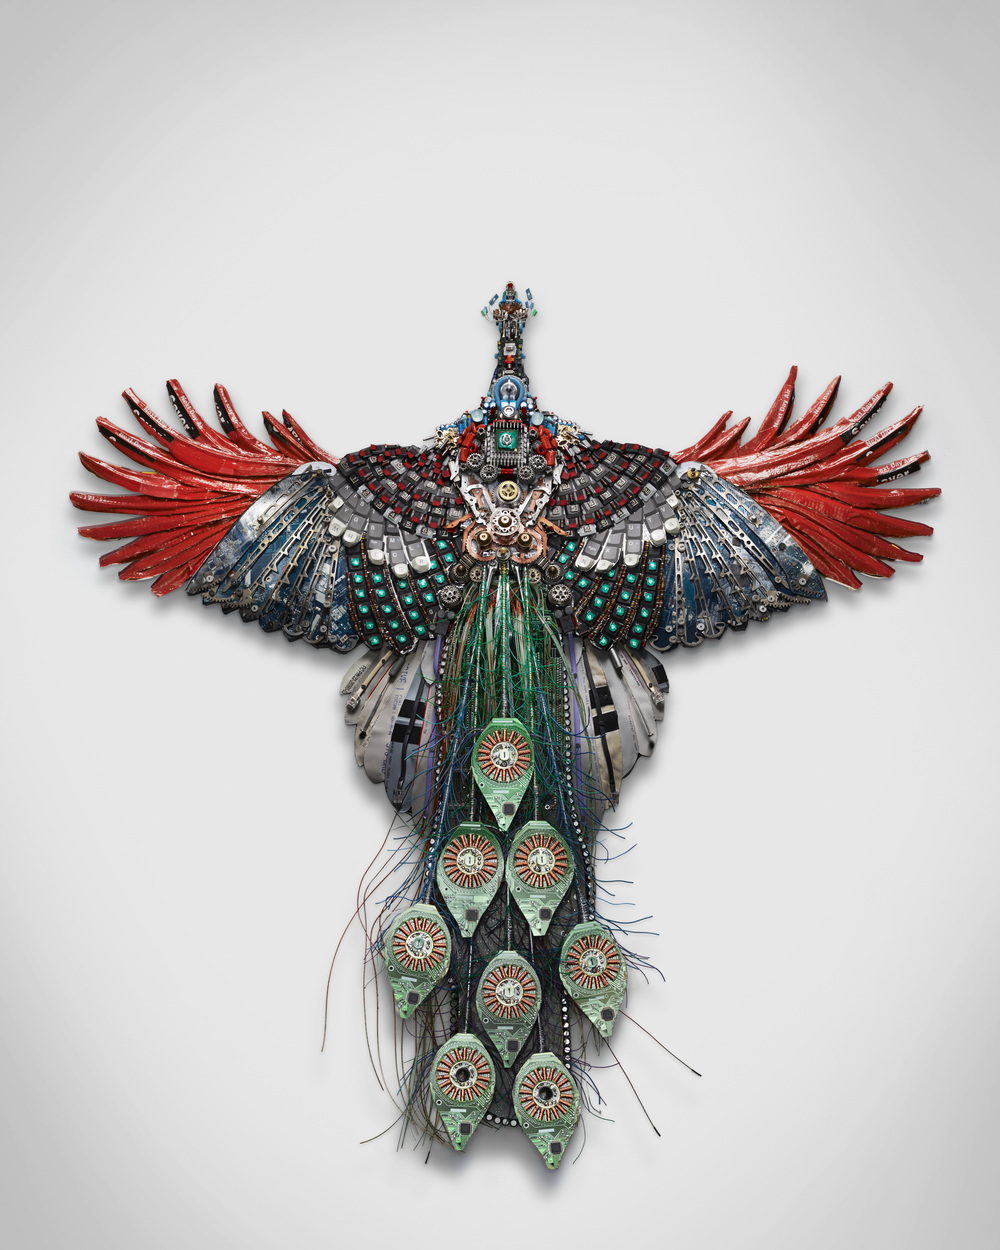 Peacock As One   Commissioned by Deloitte